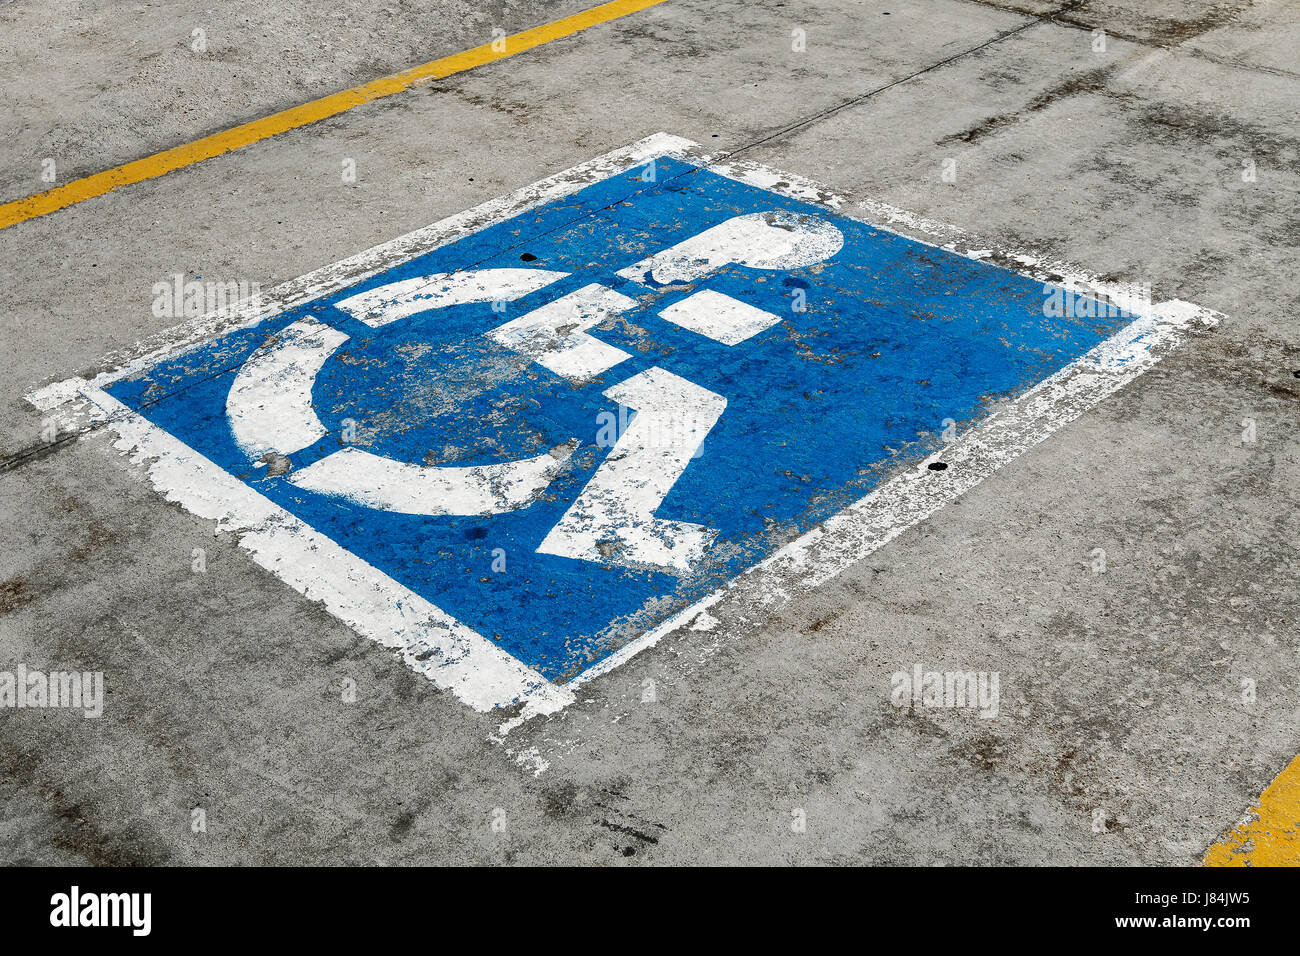 Worn out sign for handicapped parking spot. - Stock Image